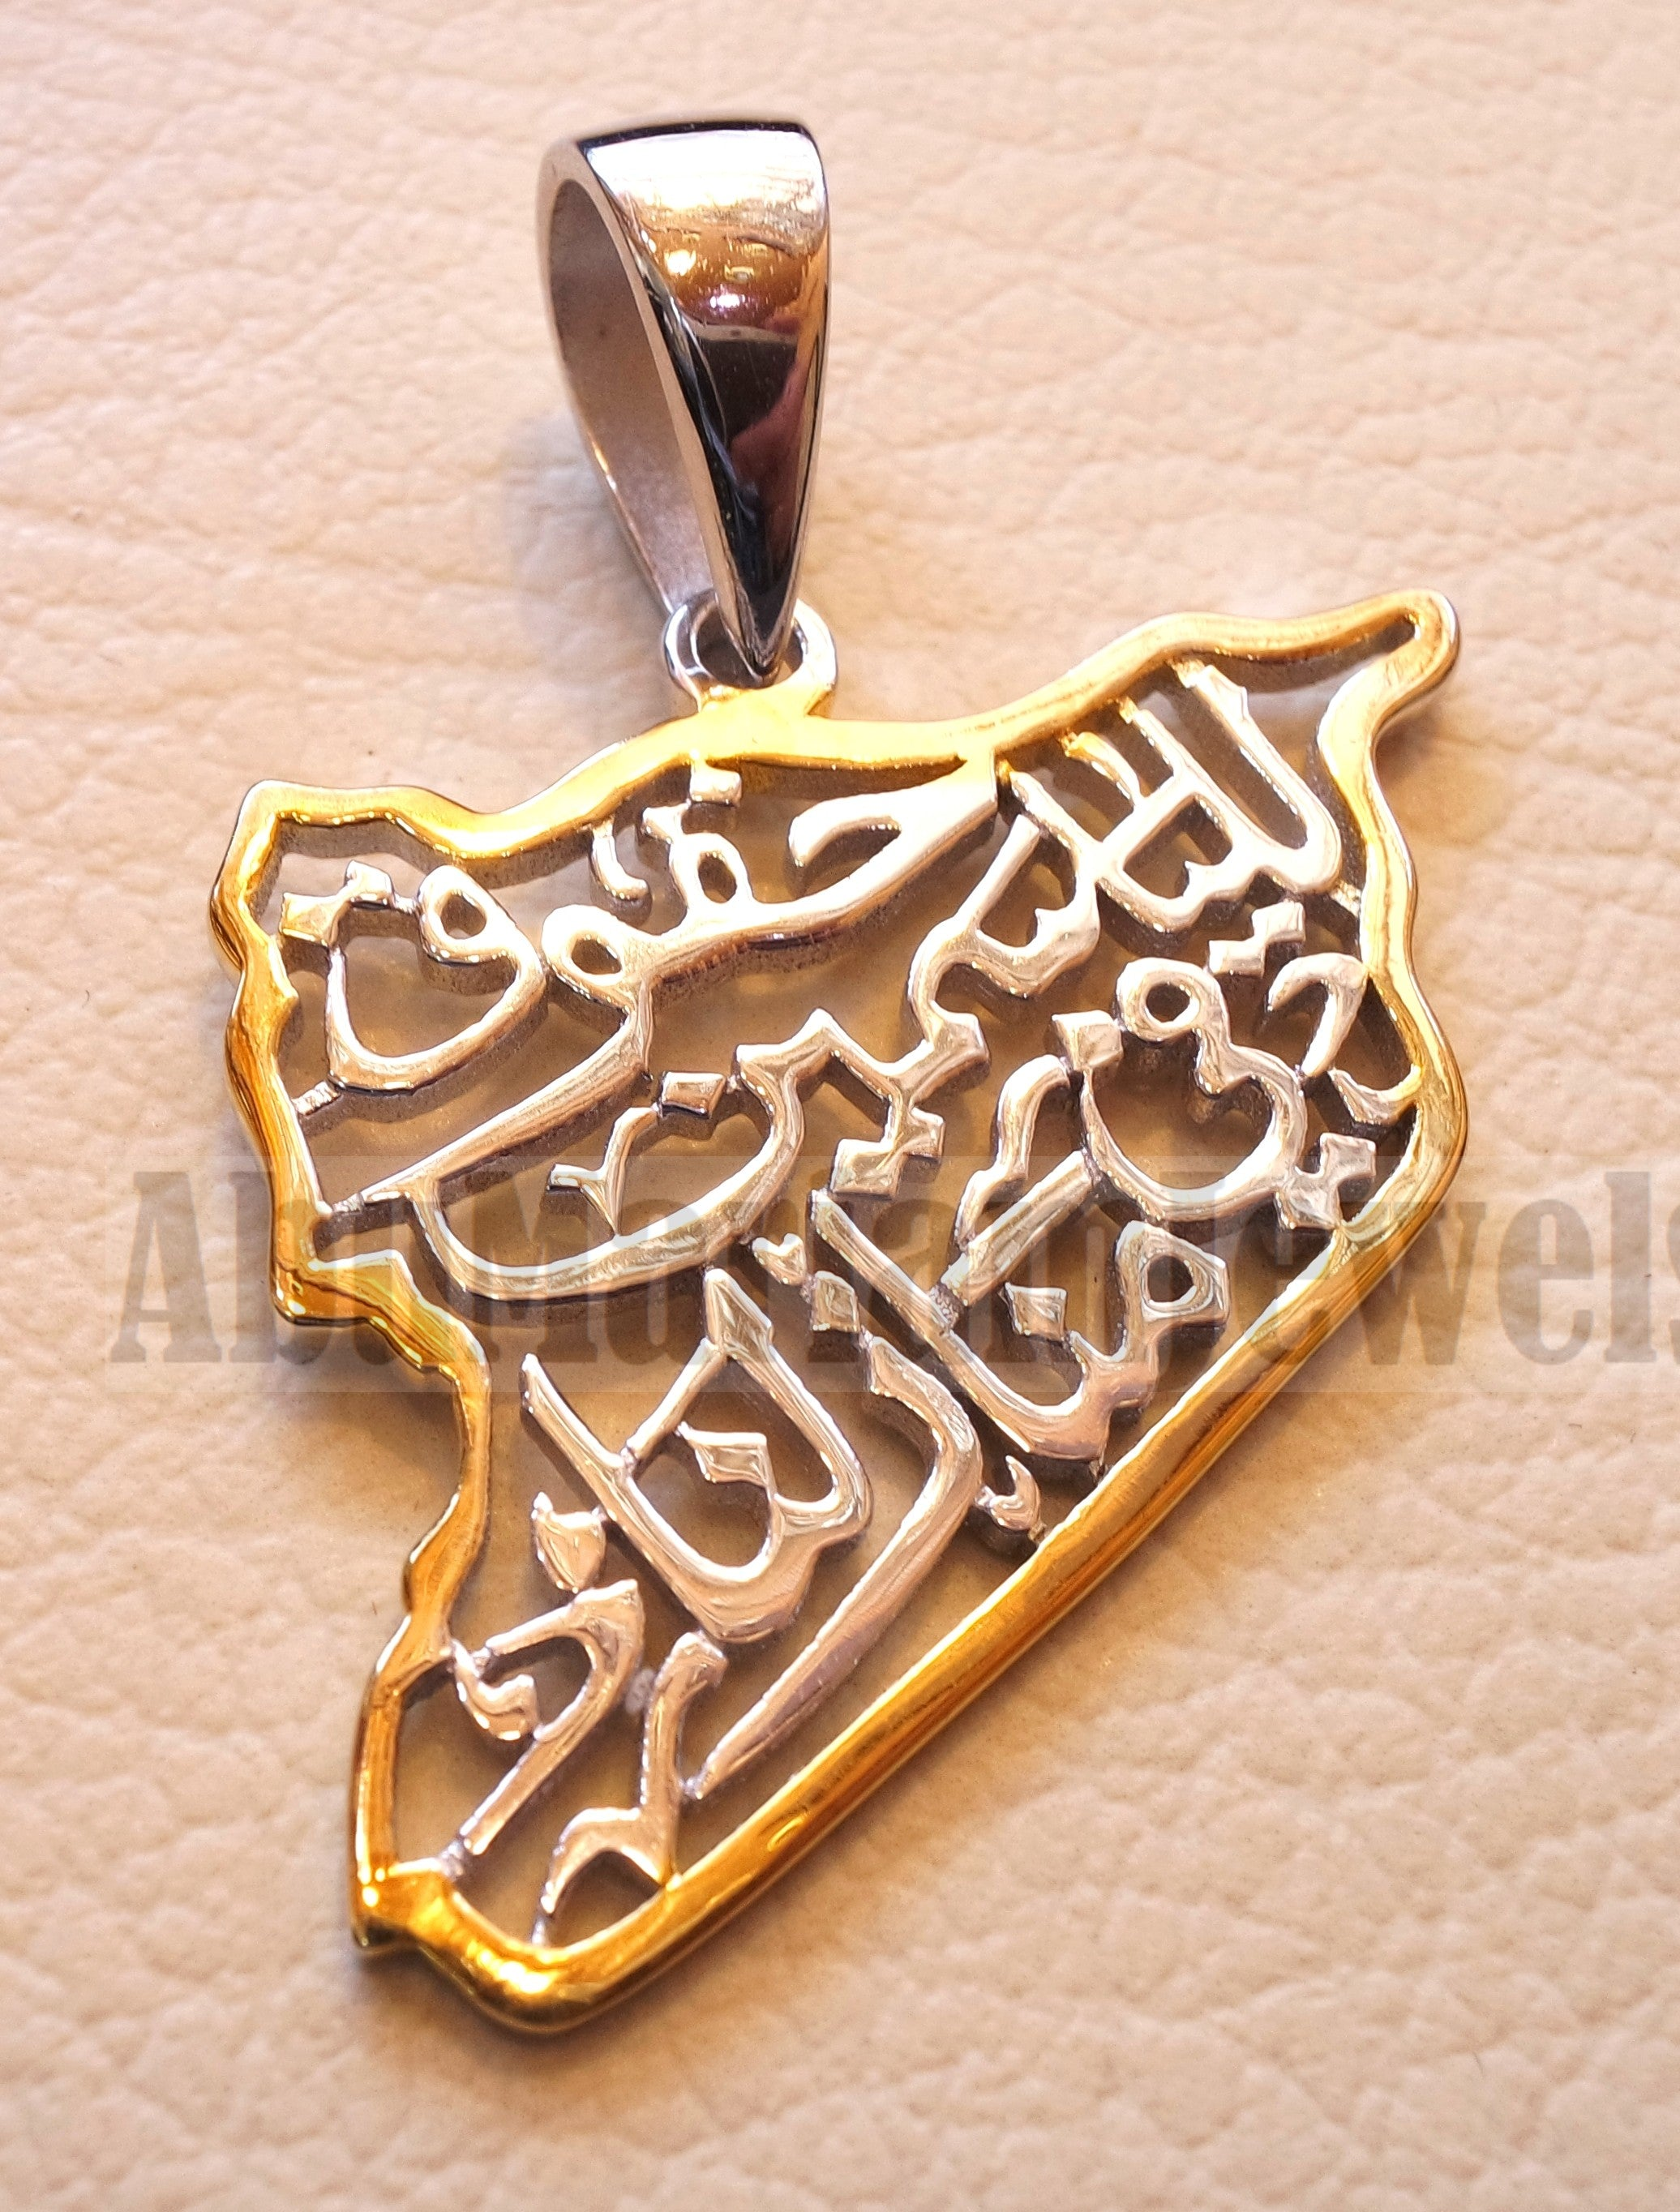 Syria map pendant with famous poem verse sterling silver 925 , yellow 14 k plating frame jewelry arabic fast shipping خارطه سوريا